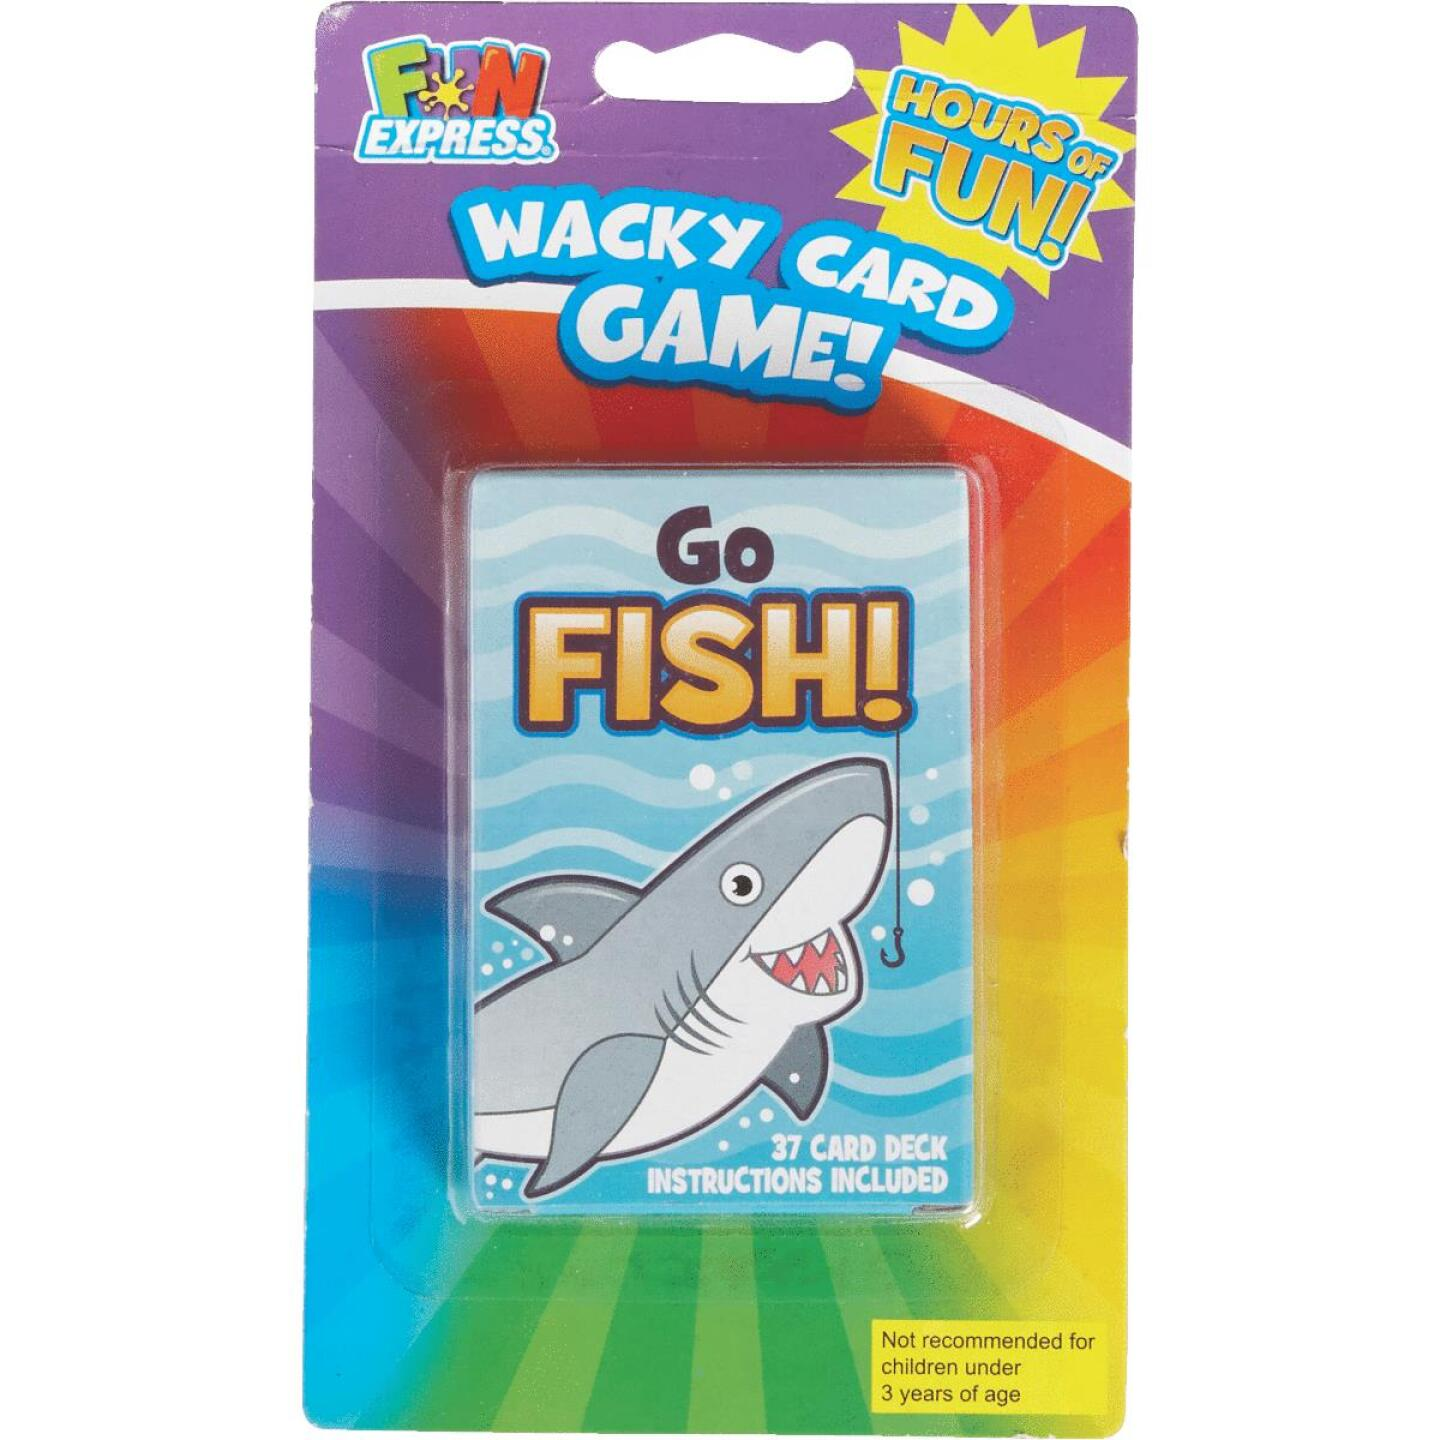 Fun Express Wacky Card Game Assortment Image 2